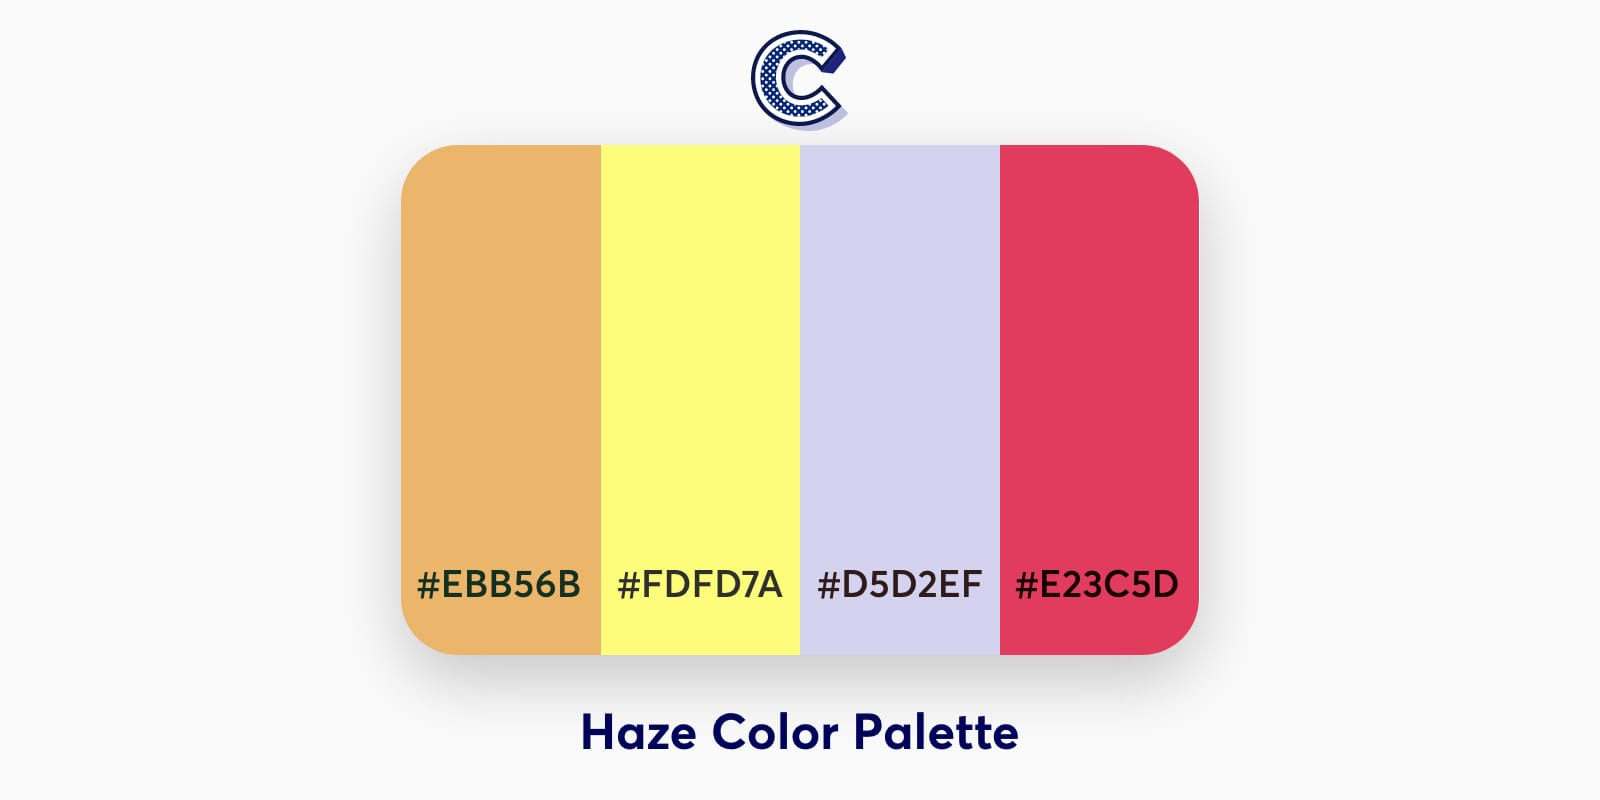 the featured image of haze color palette